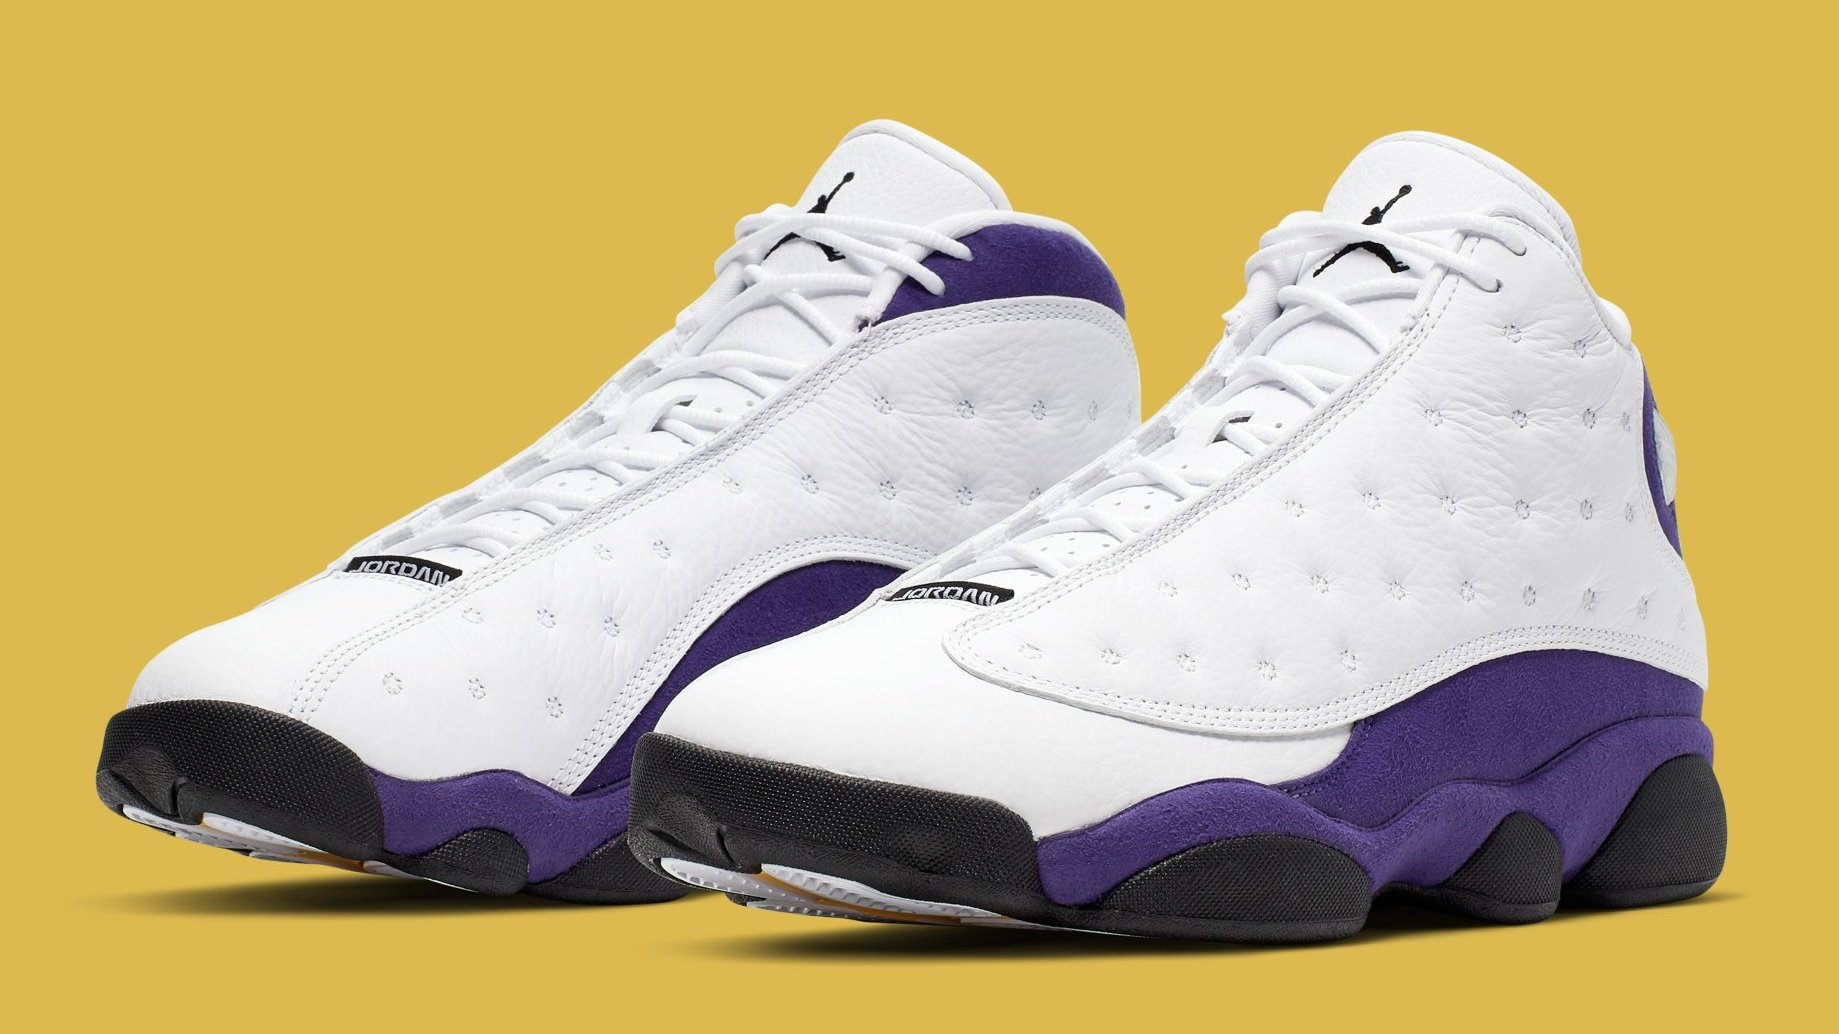 super popular 81263 0caa6 Air Jordan 13 'Lakers' White/Black-Court Purple-University ...